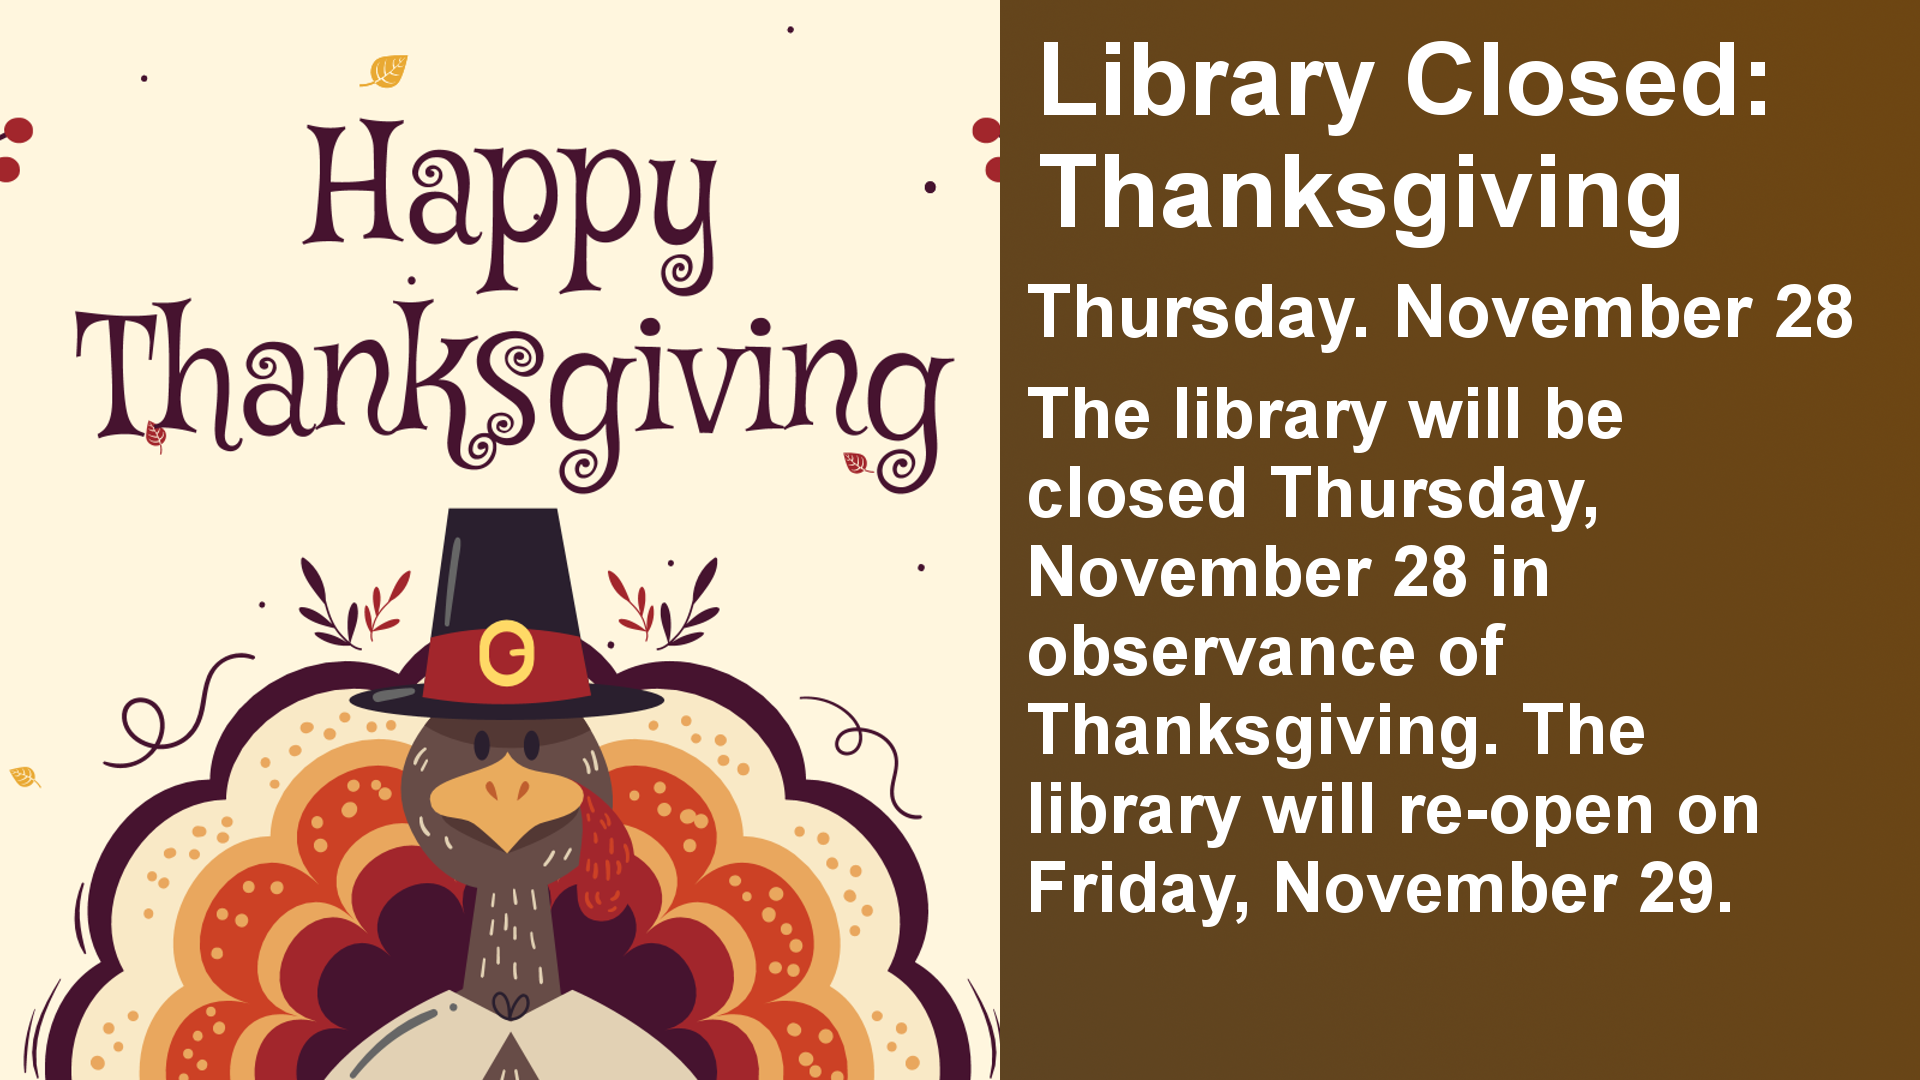 The library will be closed Thursday, November 28 in observance of Thanksgiving. The library will re-open on Friday, November 29.